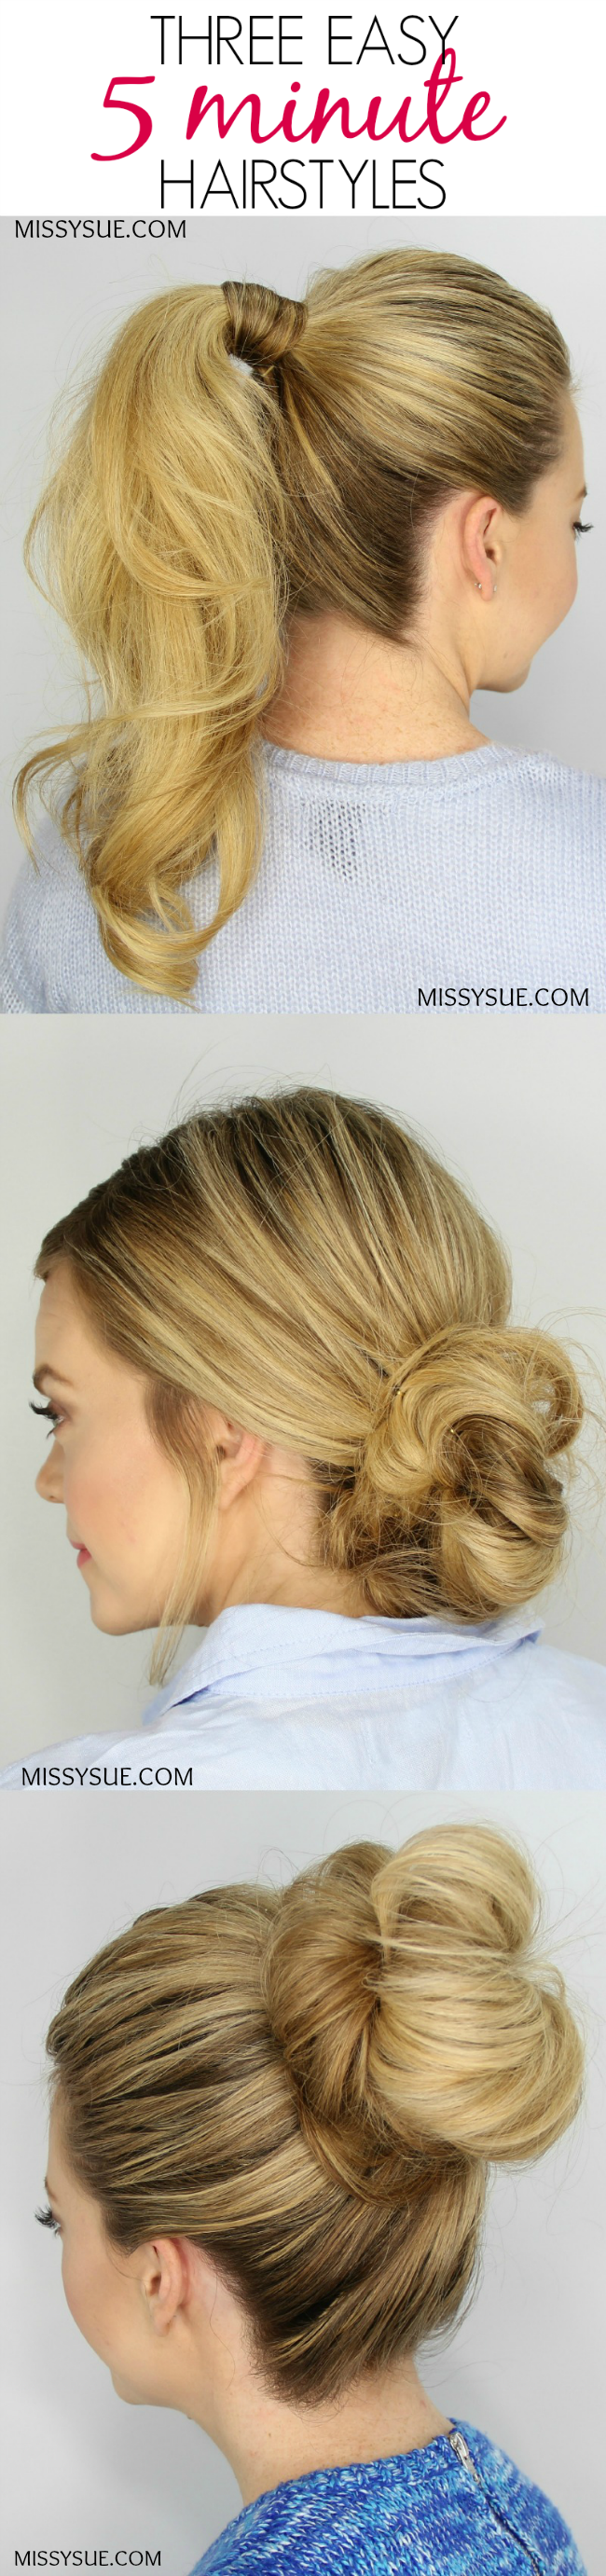 easy minute hairstyles beauty fashion pinterest cabello